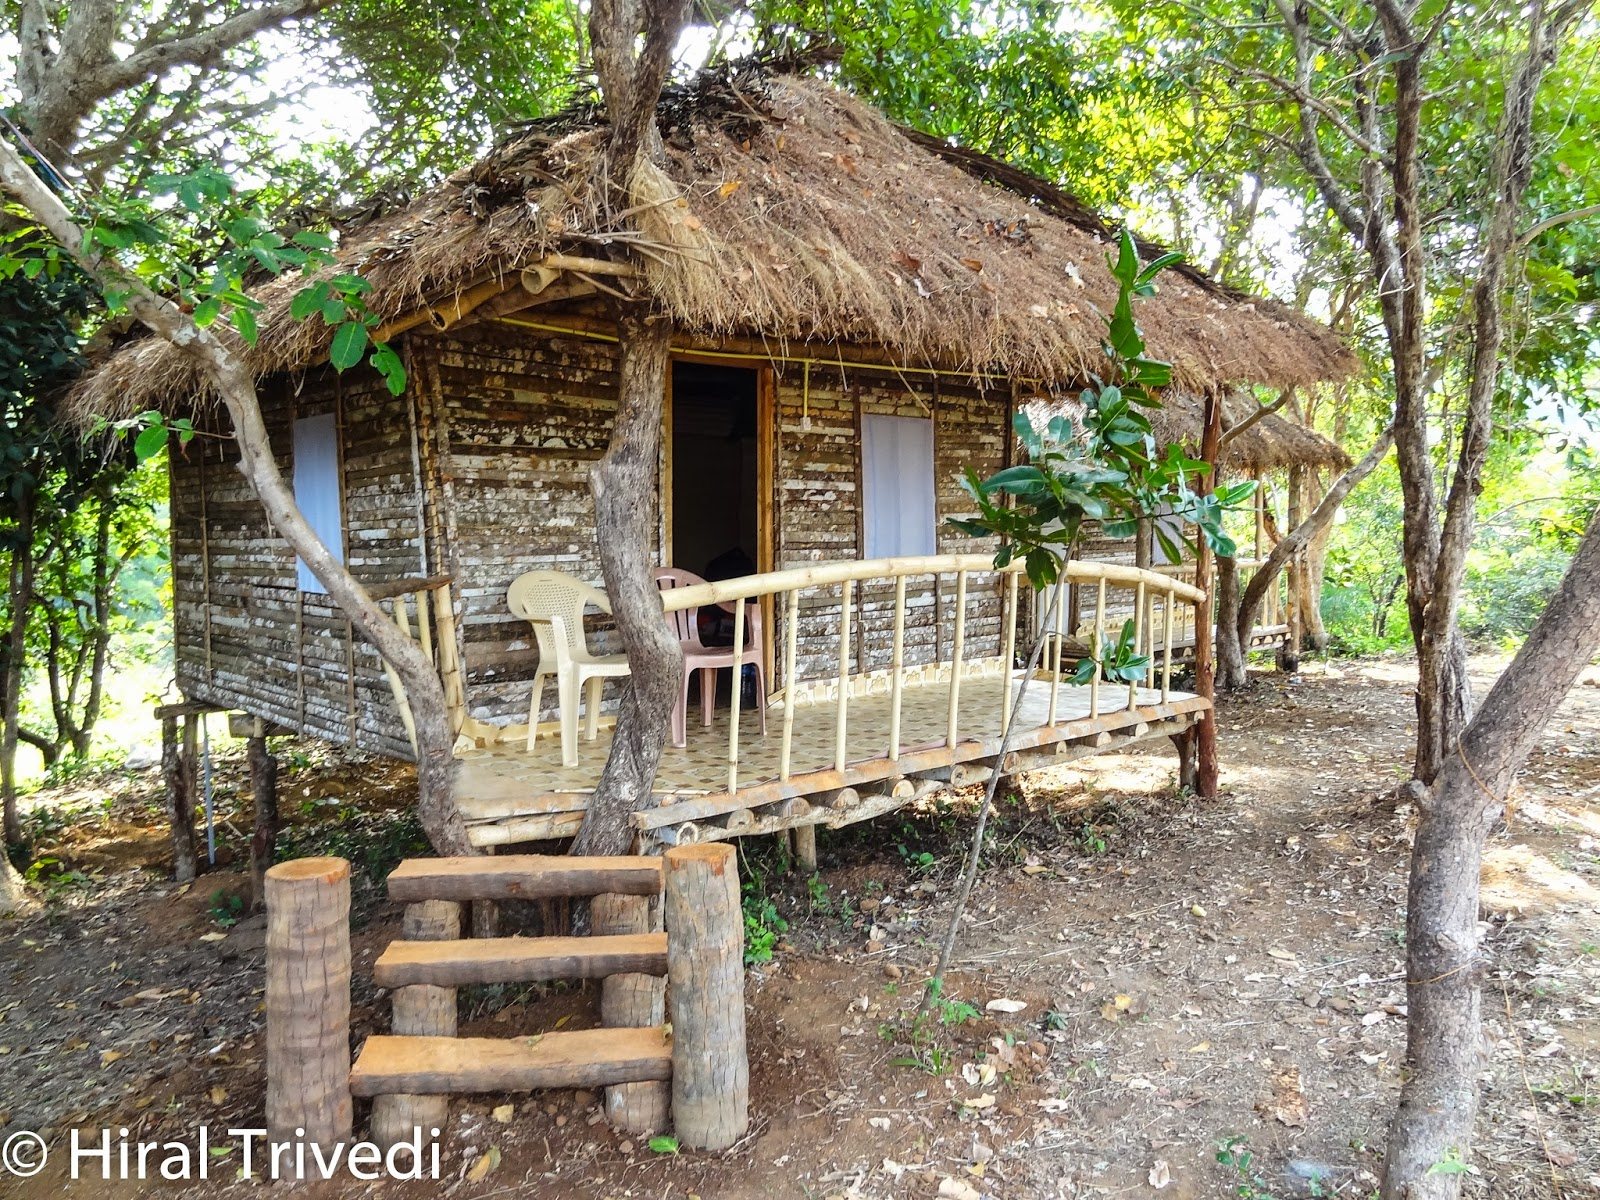 This wooden cottage at the Kudle Beach in Karnataka was cozy enough to spend smoe quiet time away from the madness.